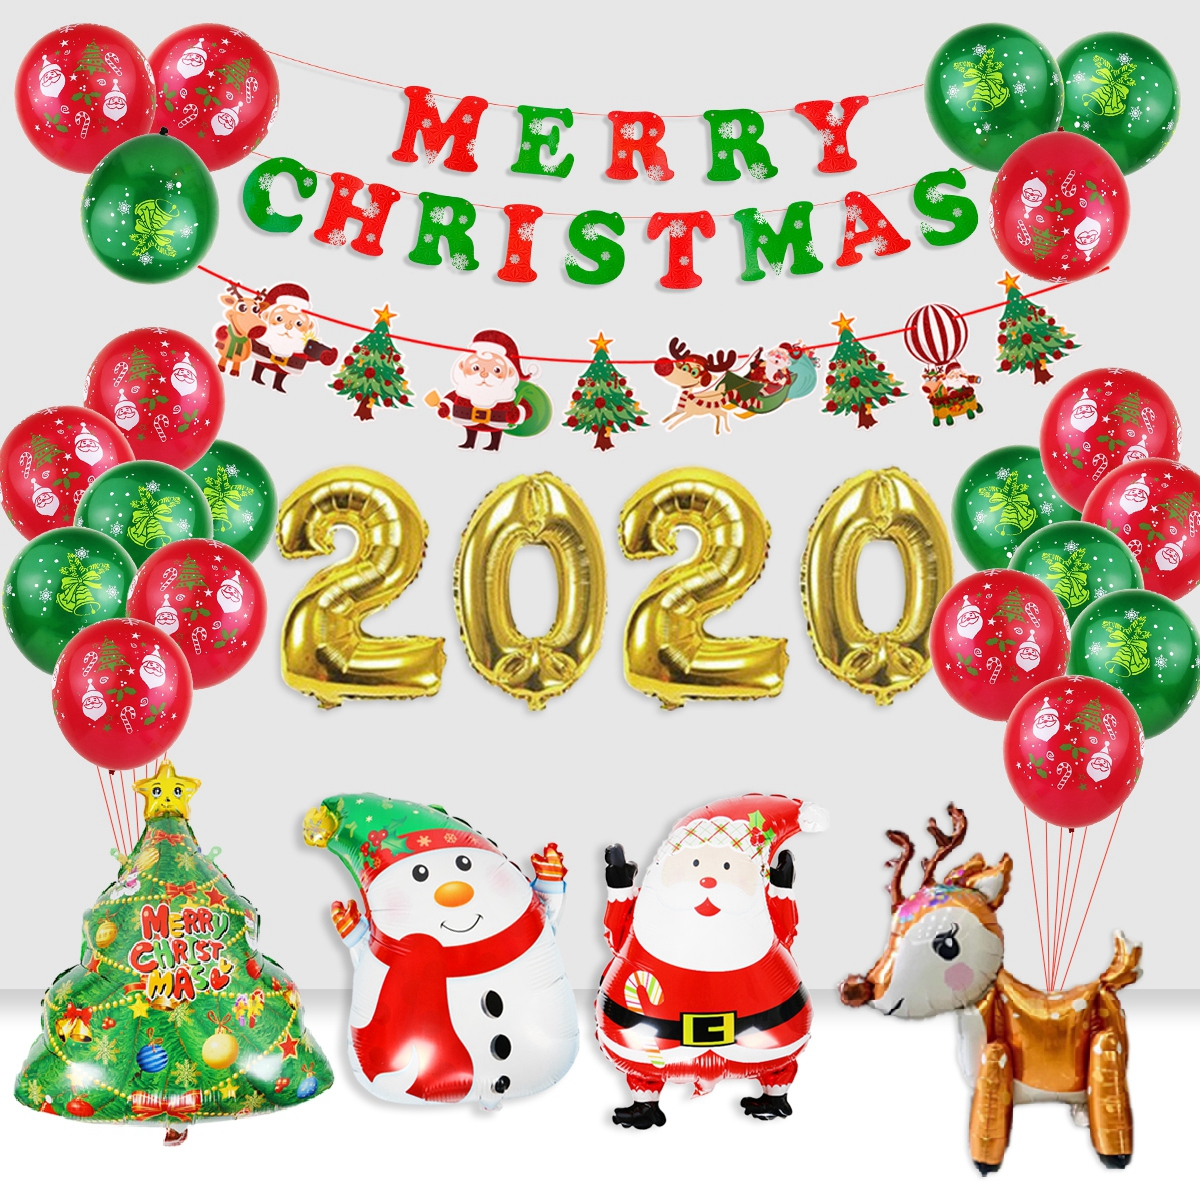 Details About 30pc Merry Christmas Foil Balloons Banner Santa Claus Party Decor Happy New Year